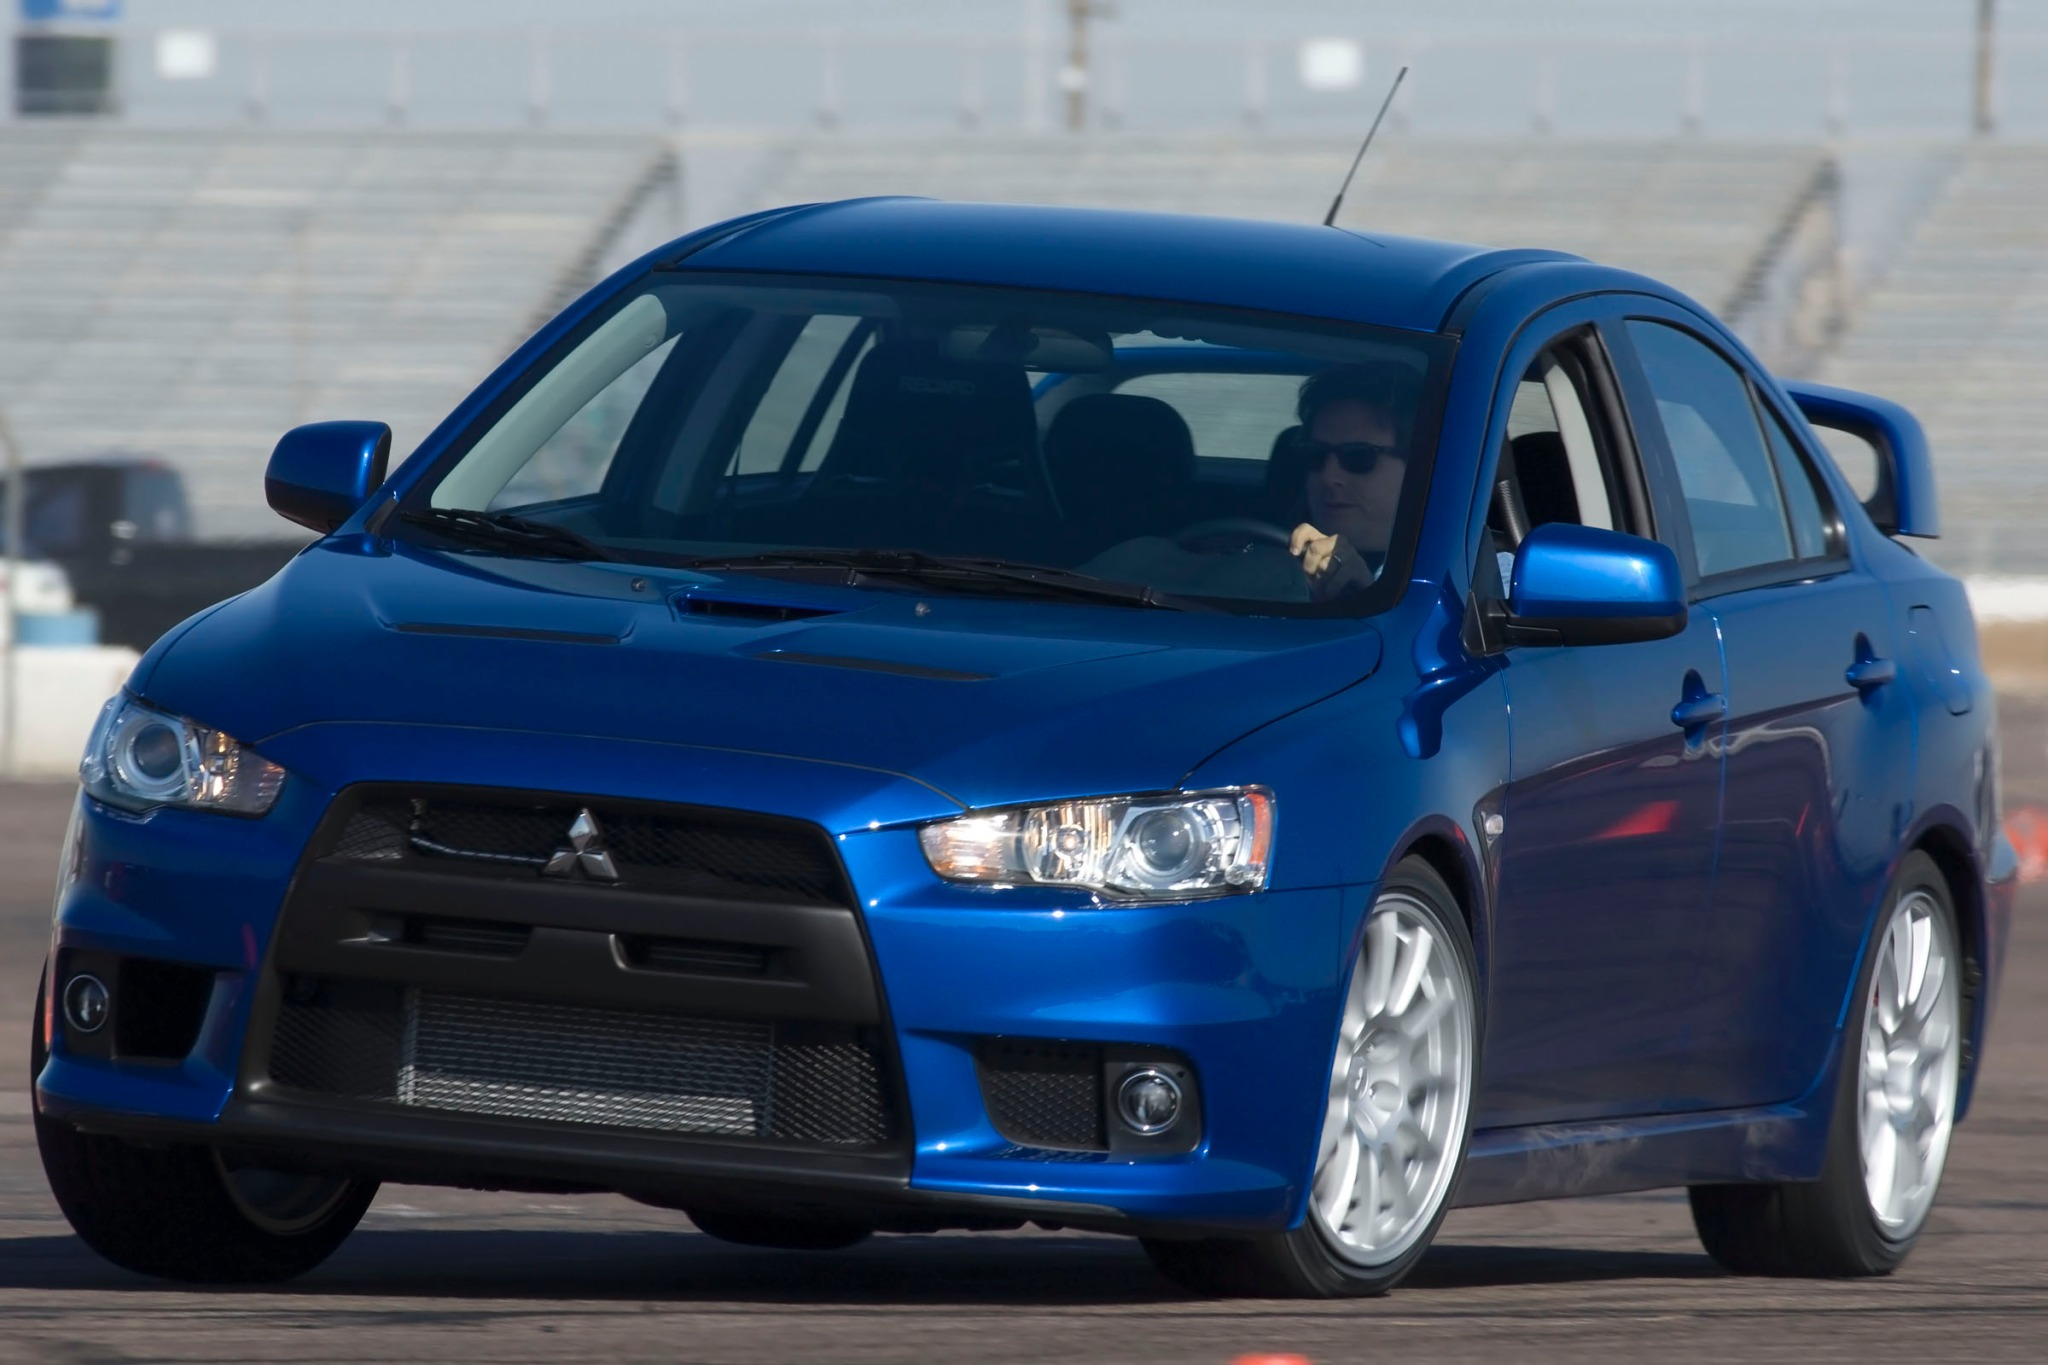 2013 mitsubishi lancer evolution image 2. Black Bedroom Furniture Sets. Home Design Ideas